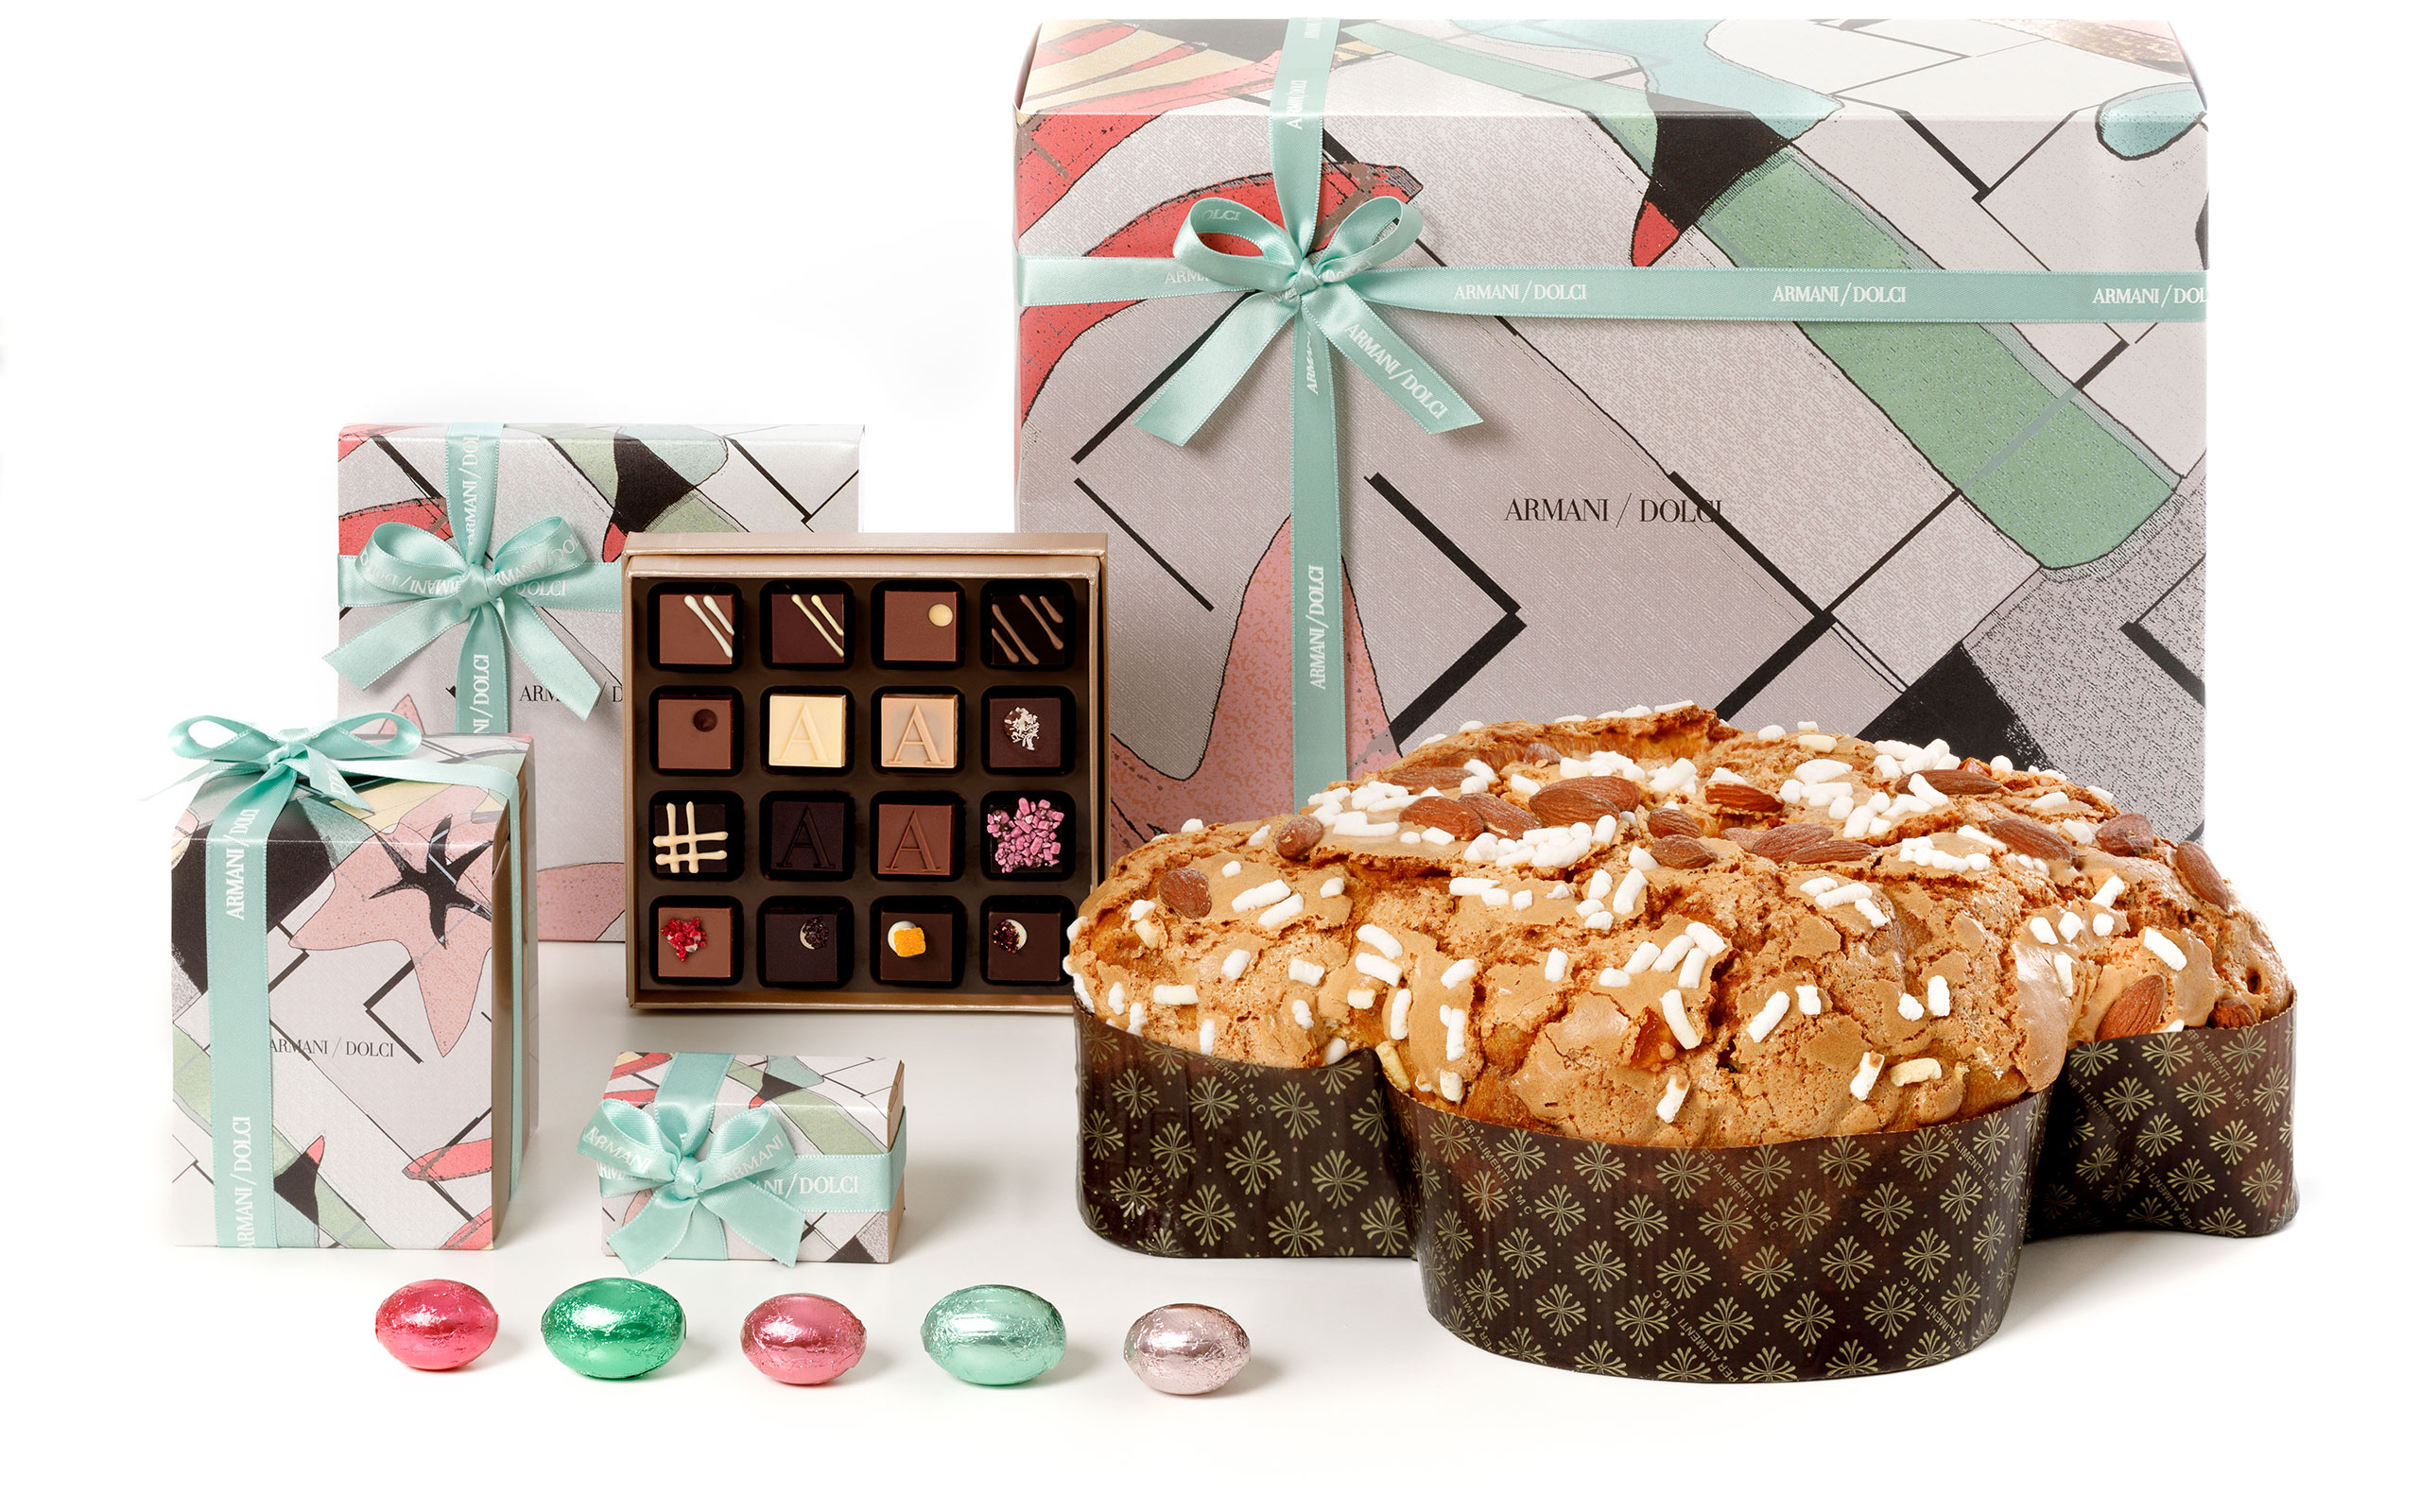 ARMANI/DOLCI Launched Limited Sweets Collection